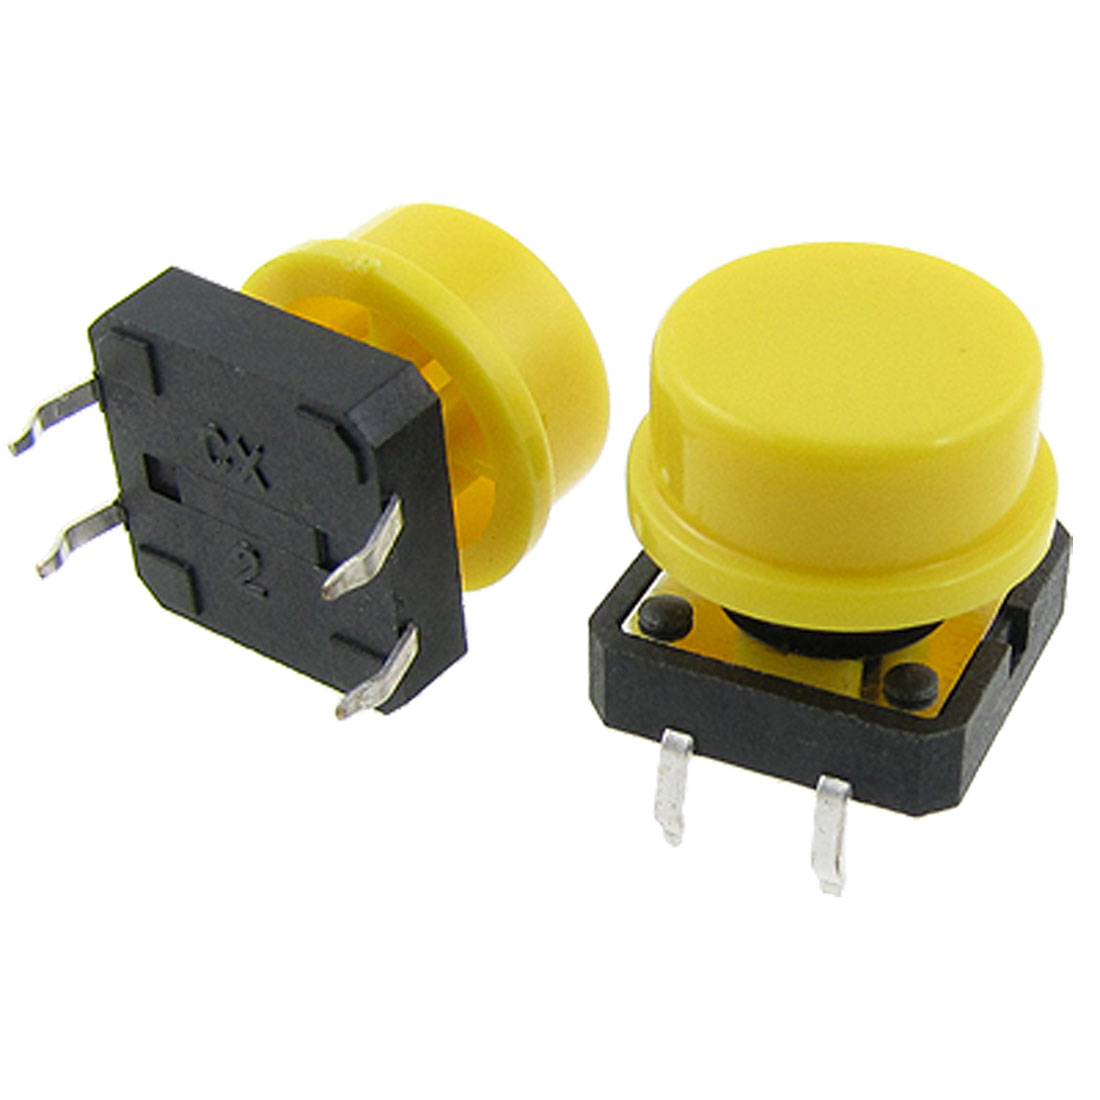 10 Pcs Momentary Tactile Push Button Switch 12 x 12mm x 12mm 4 Pin DIP Yellow